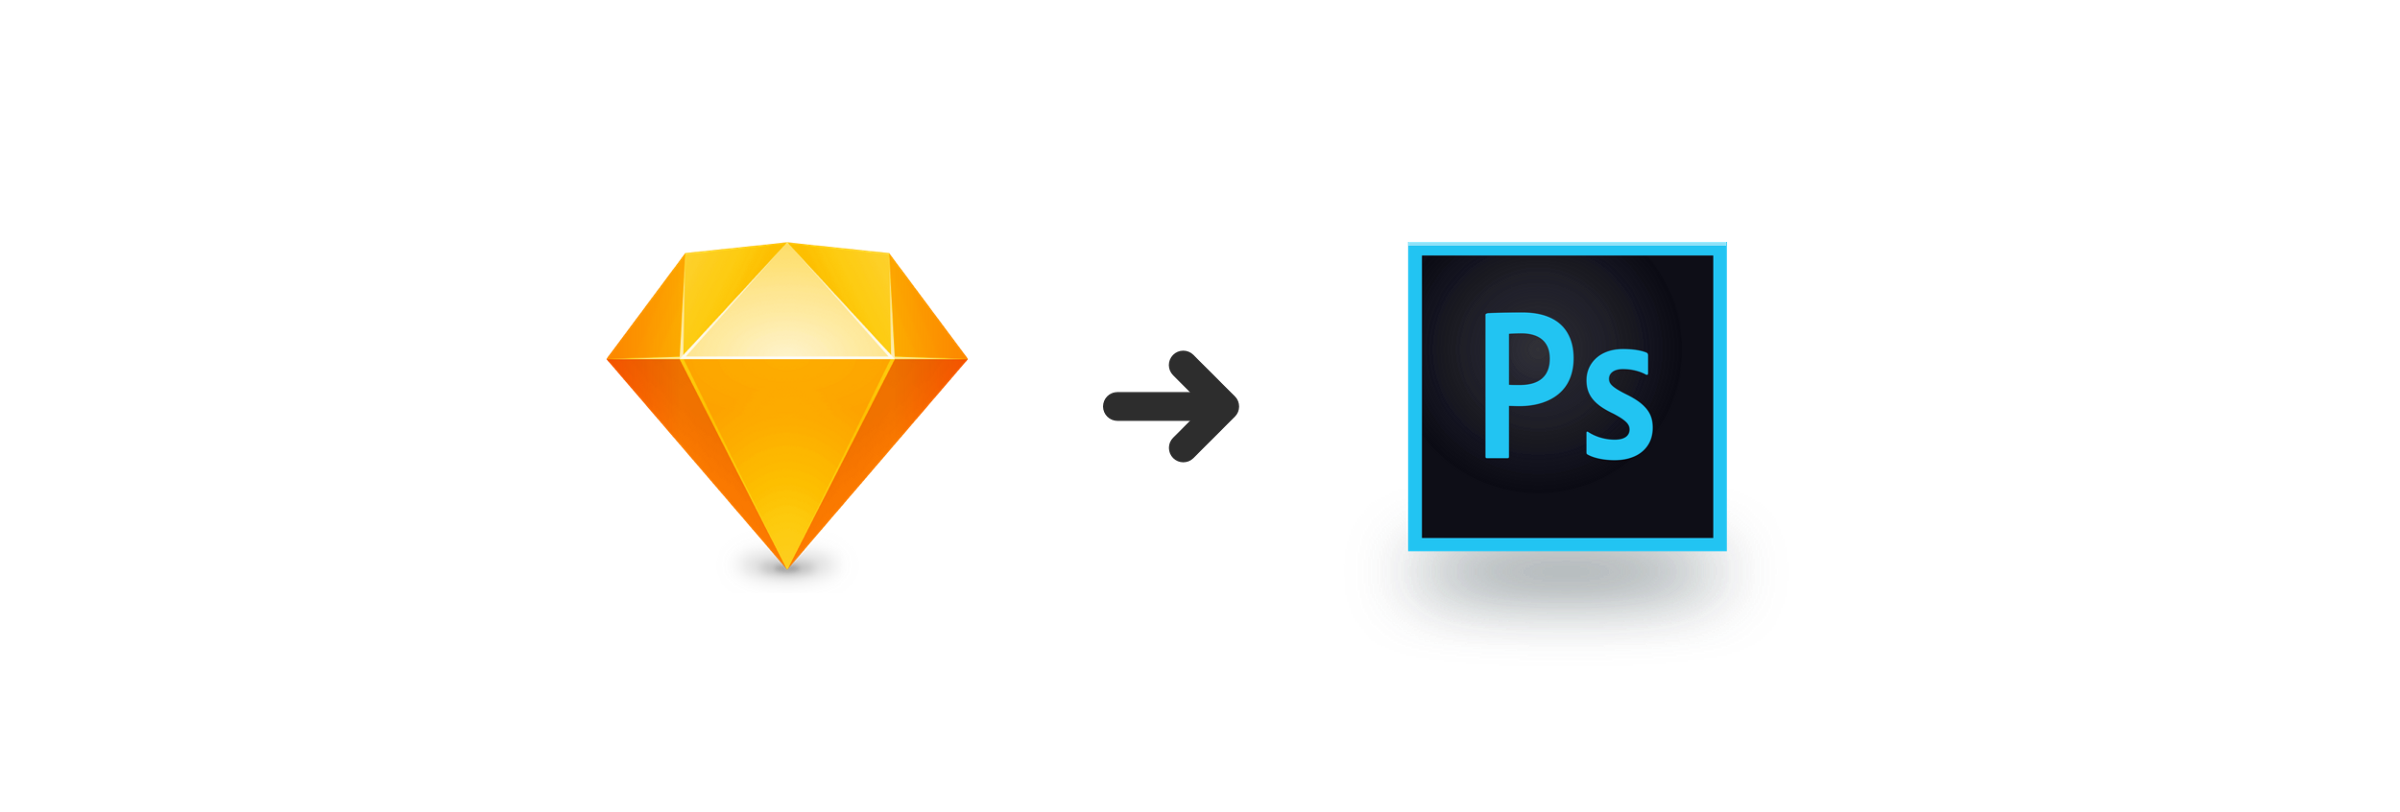 2400x812 How To Properly Export Your Sketch Designs To Photoshop